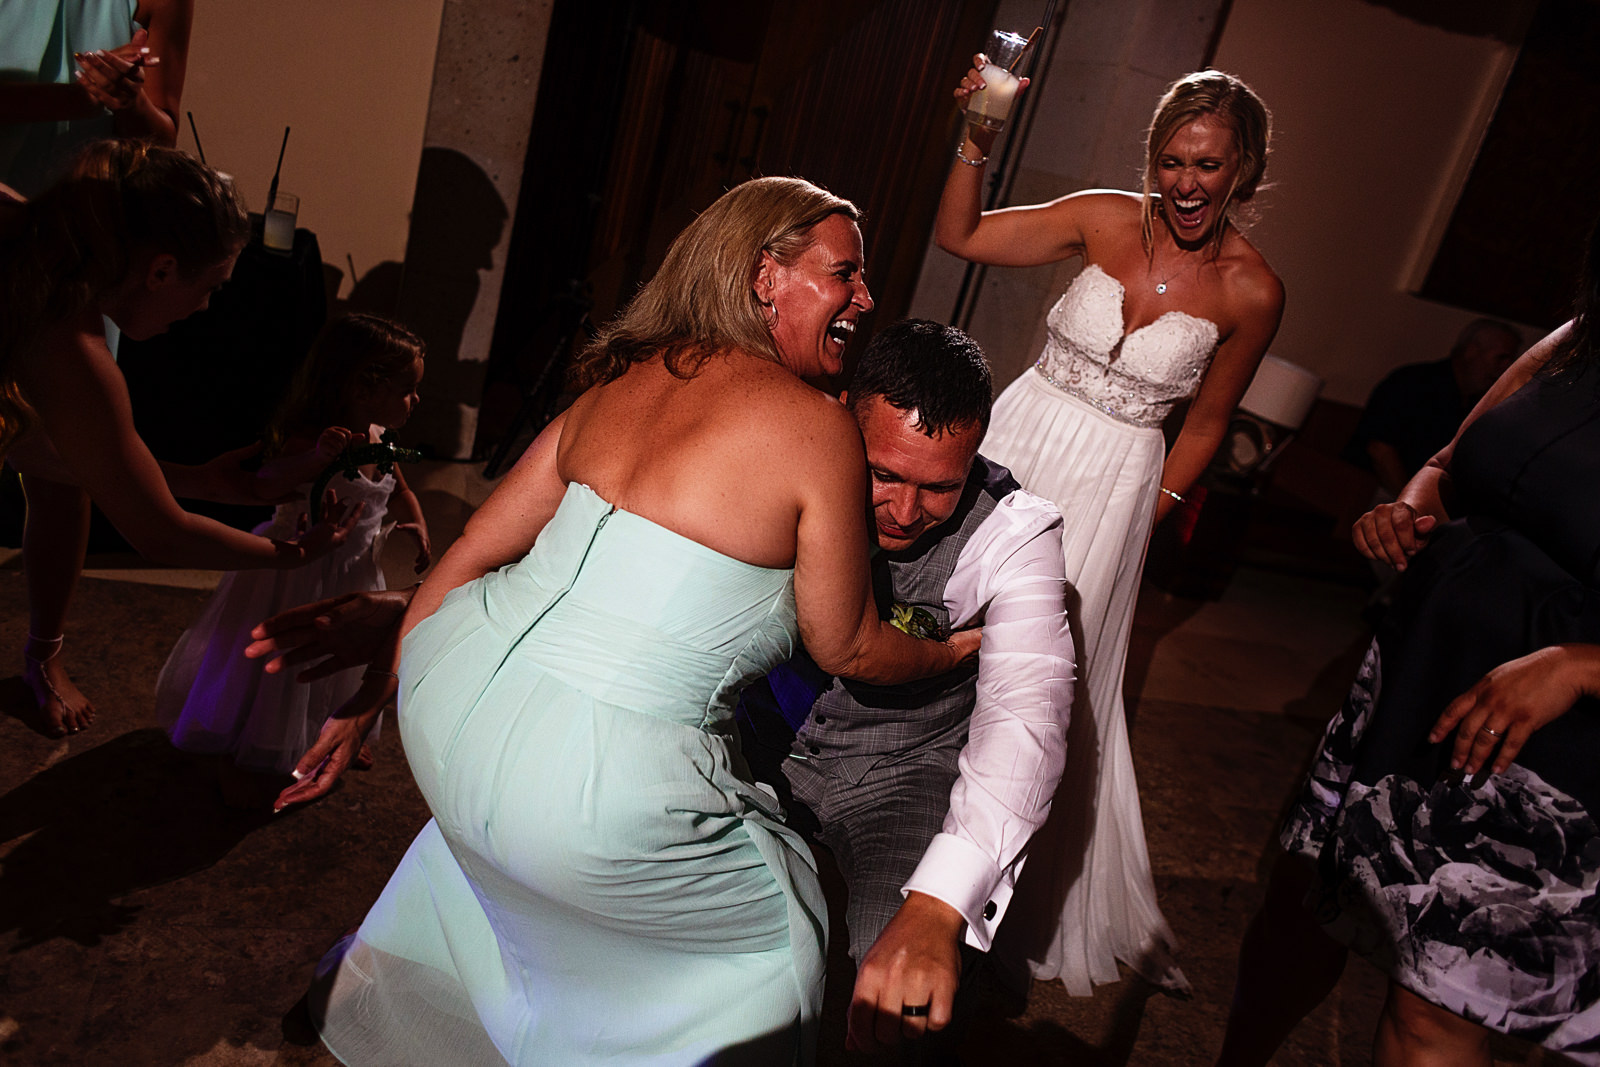 Groom dances with bridesmaid as the bride laughs in the background